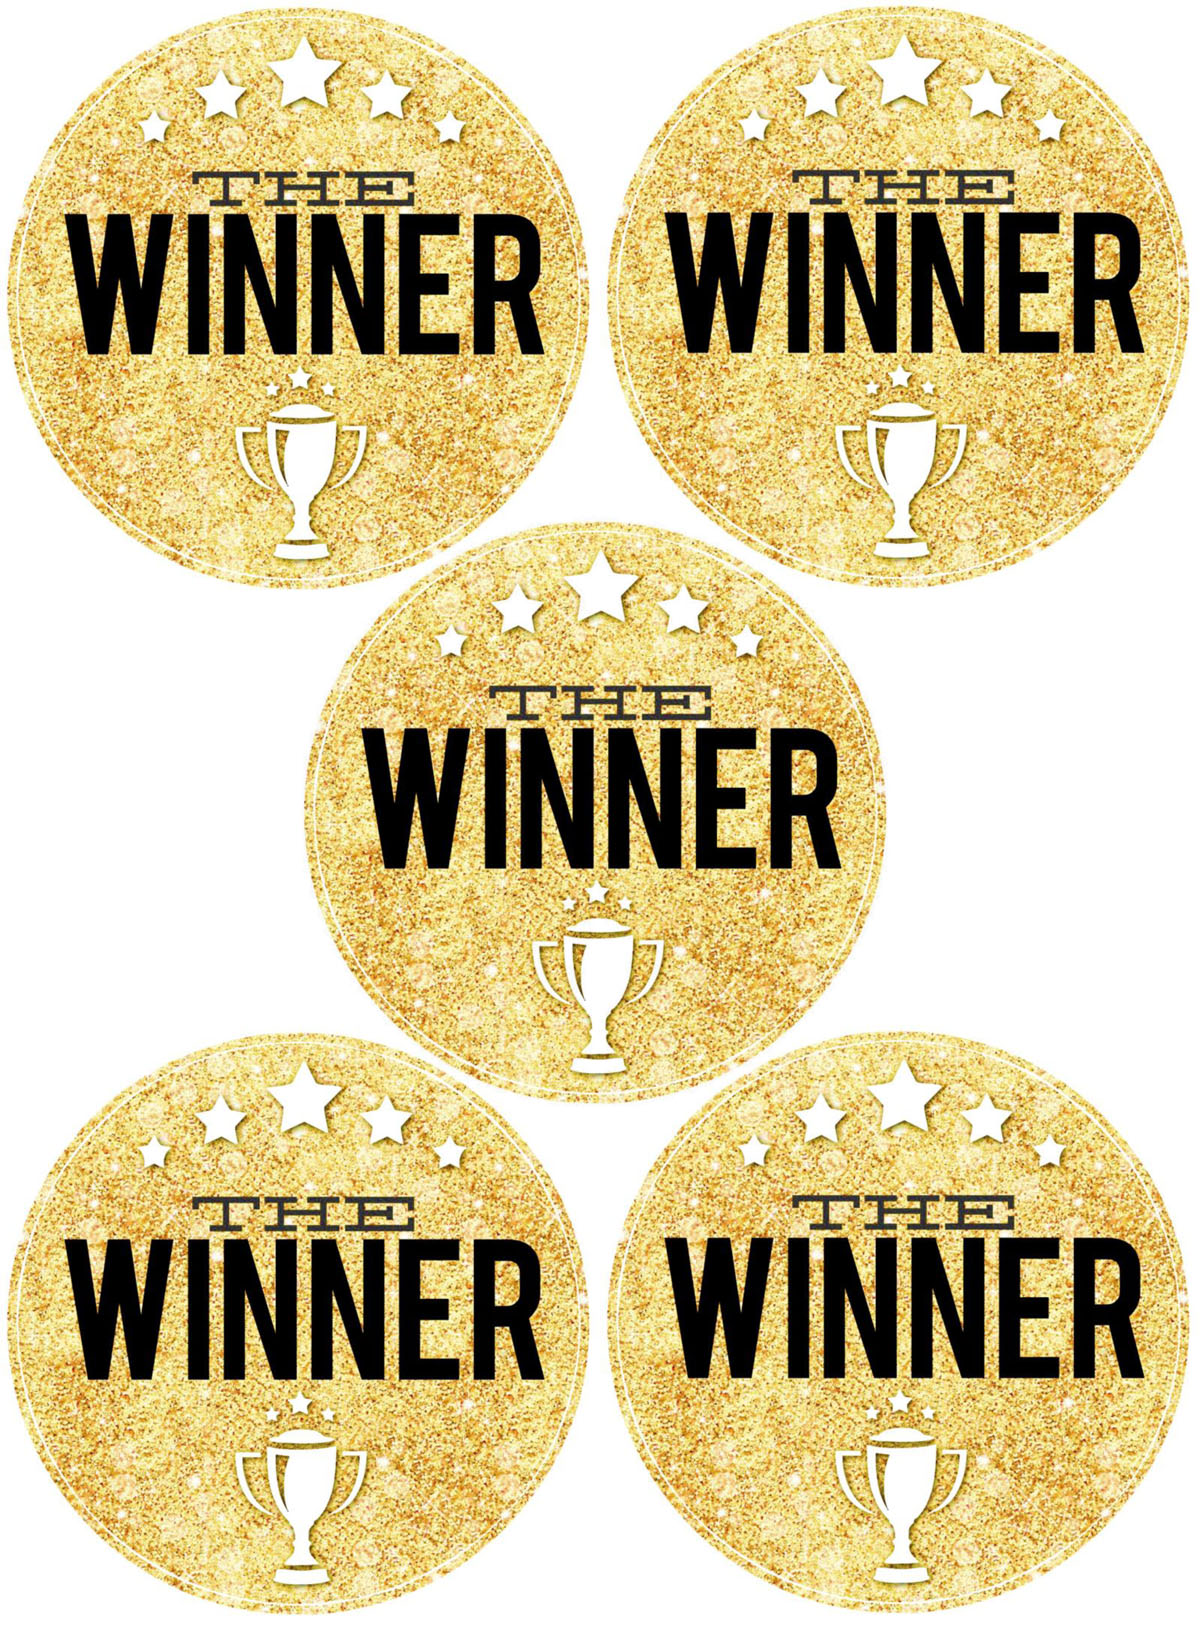 Game Night Winner Medals Printable